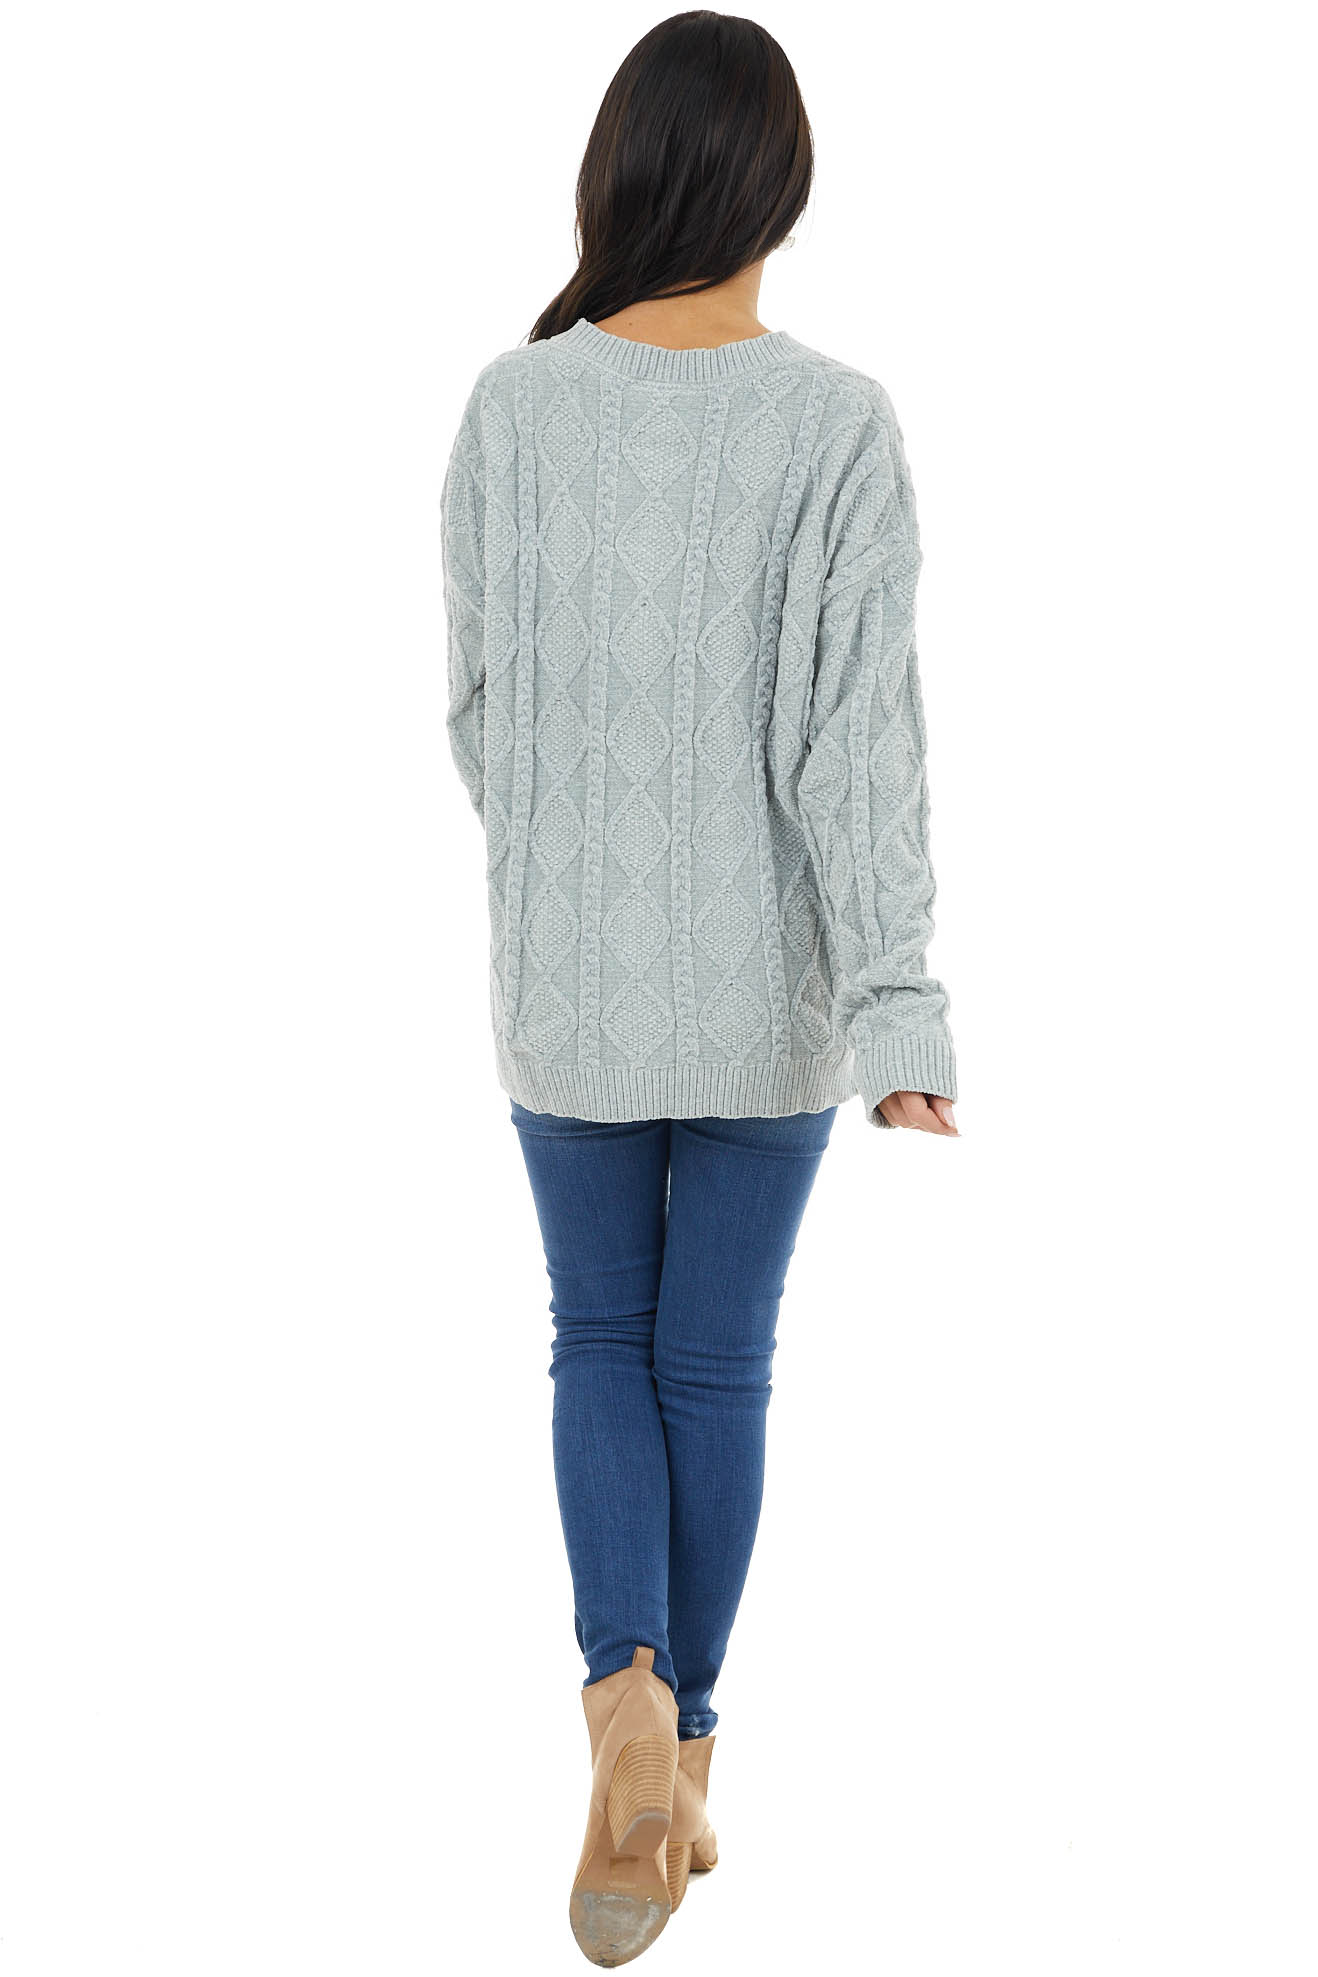 Dusty Mint Long Sleeve Soft Cable Knit Sweater